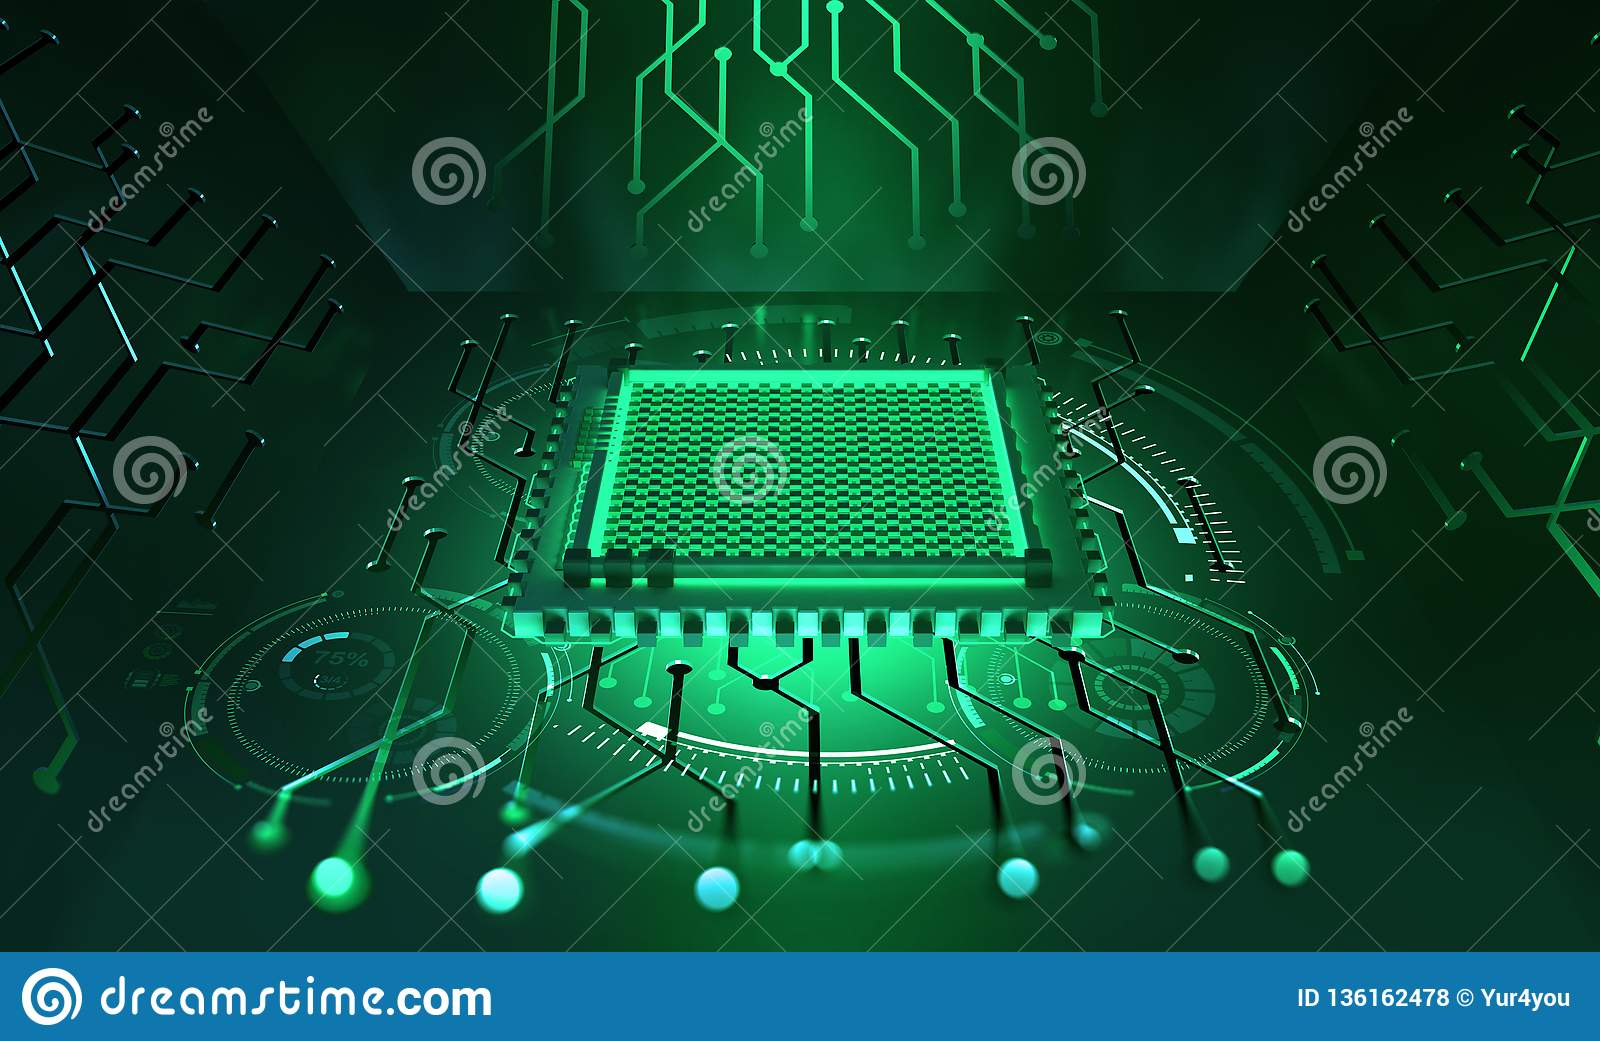 Processor of the future. Concept of global cyberspace. Innovations in computer nanotechnology